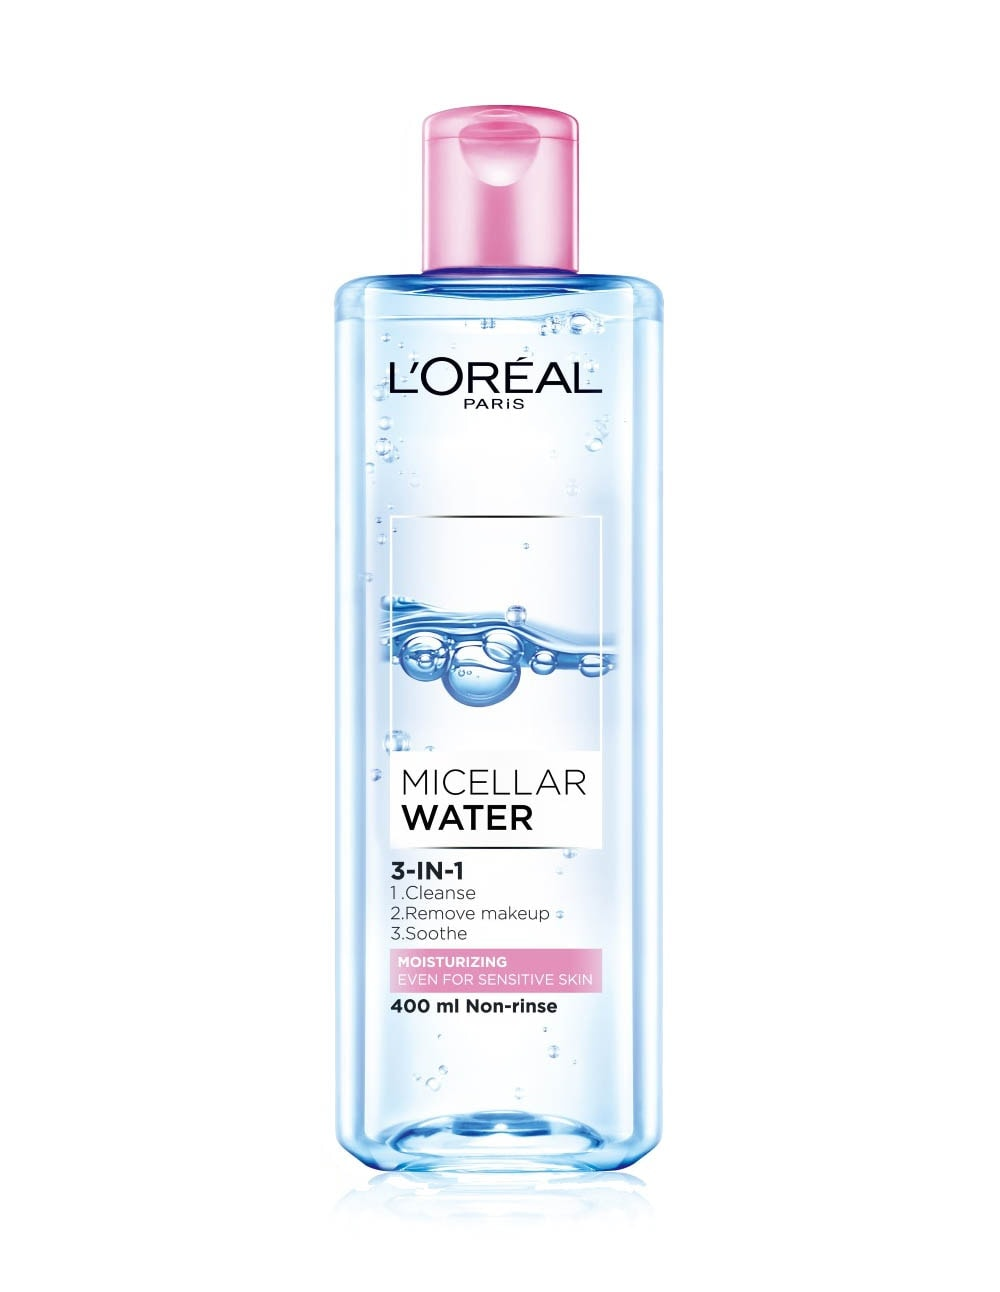 L'Oreal Micellar Water 3-in-1 Moisturizing.